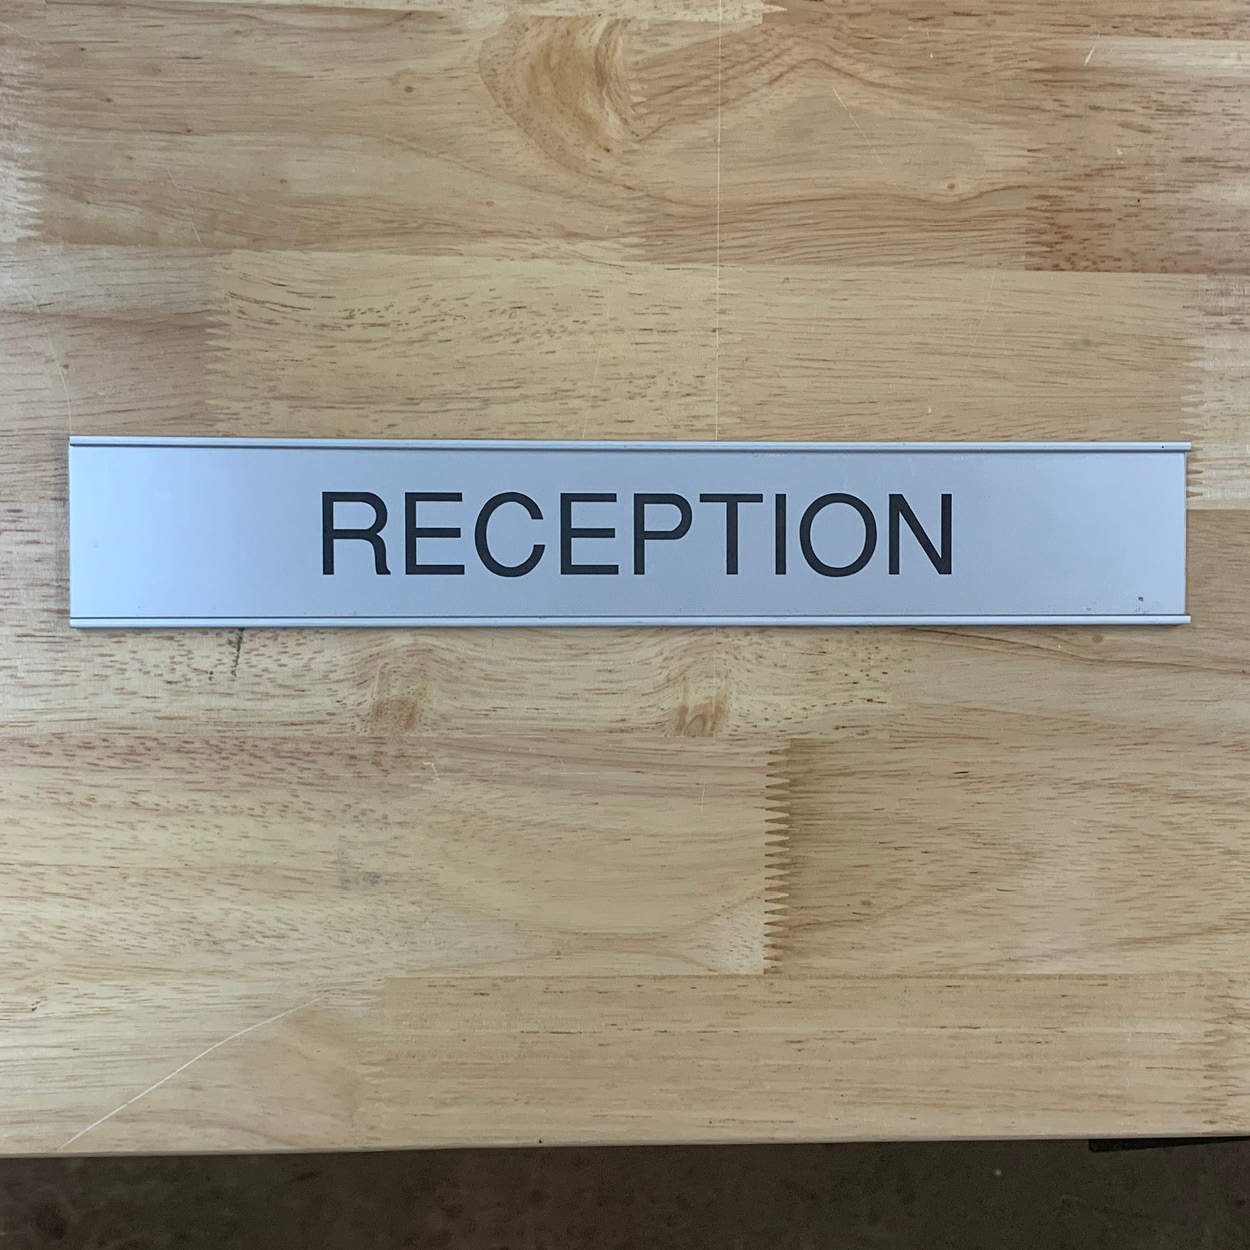 Engraving reception